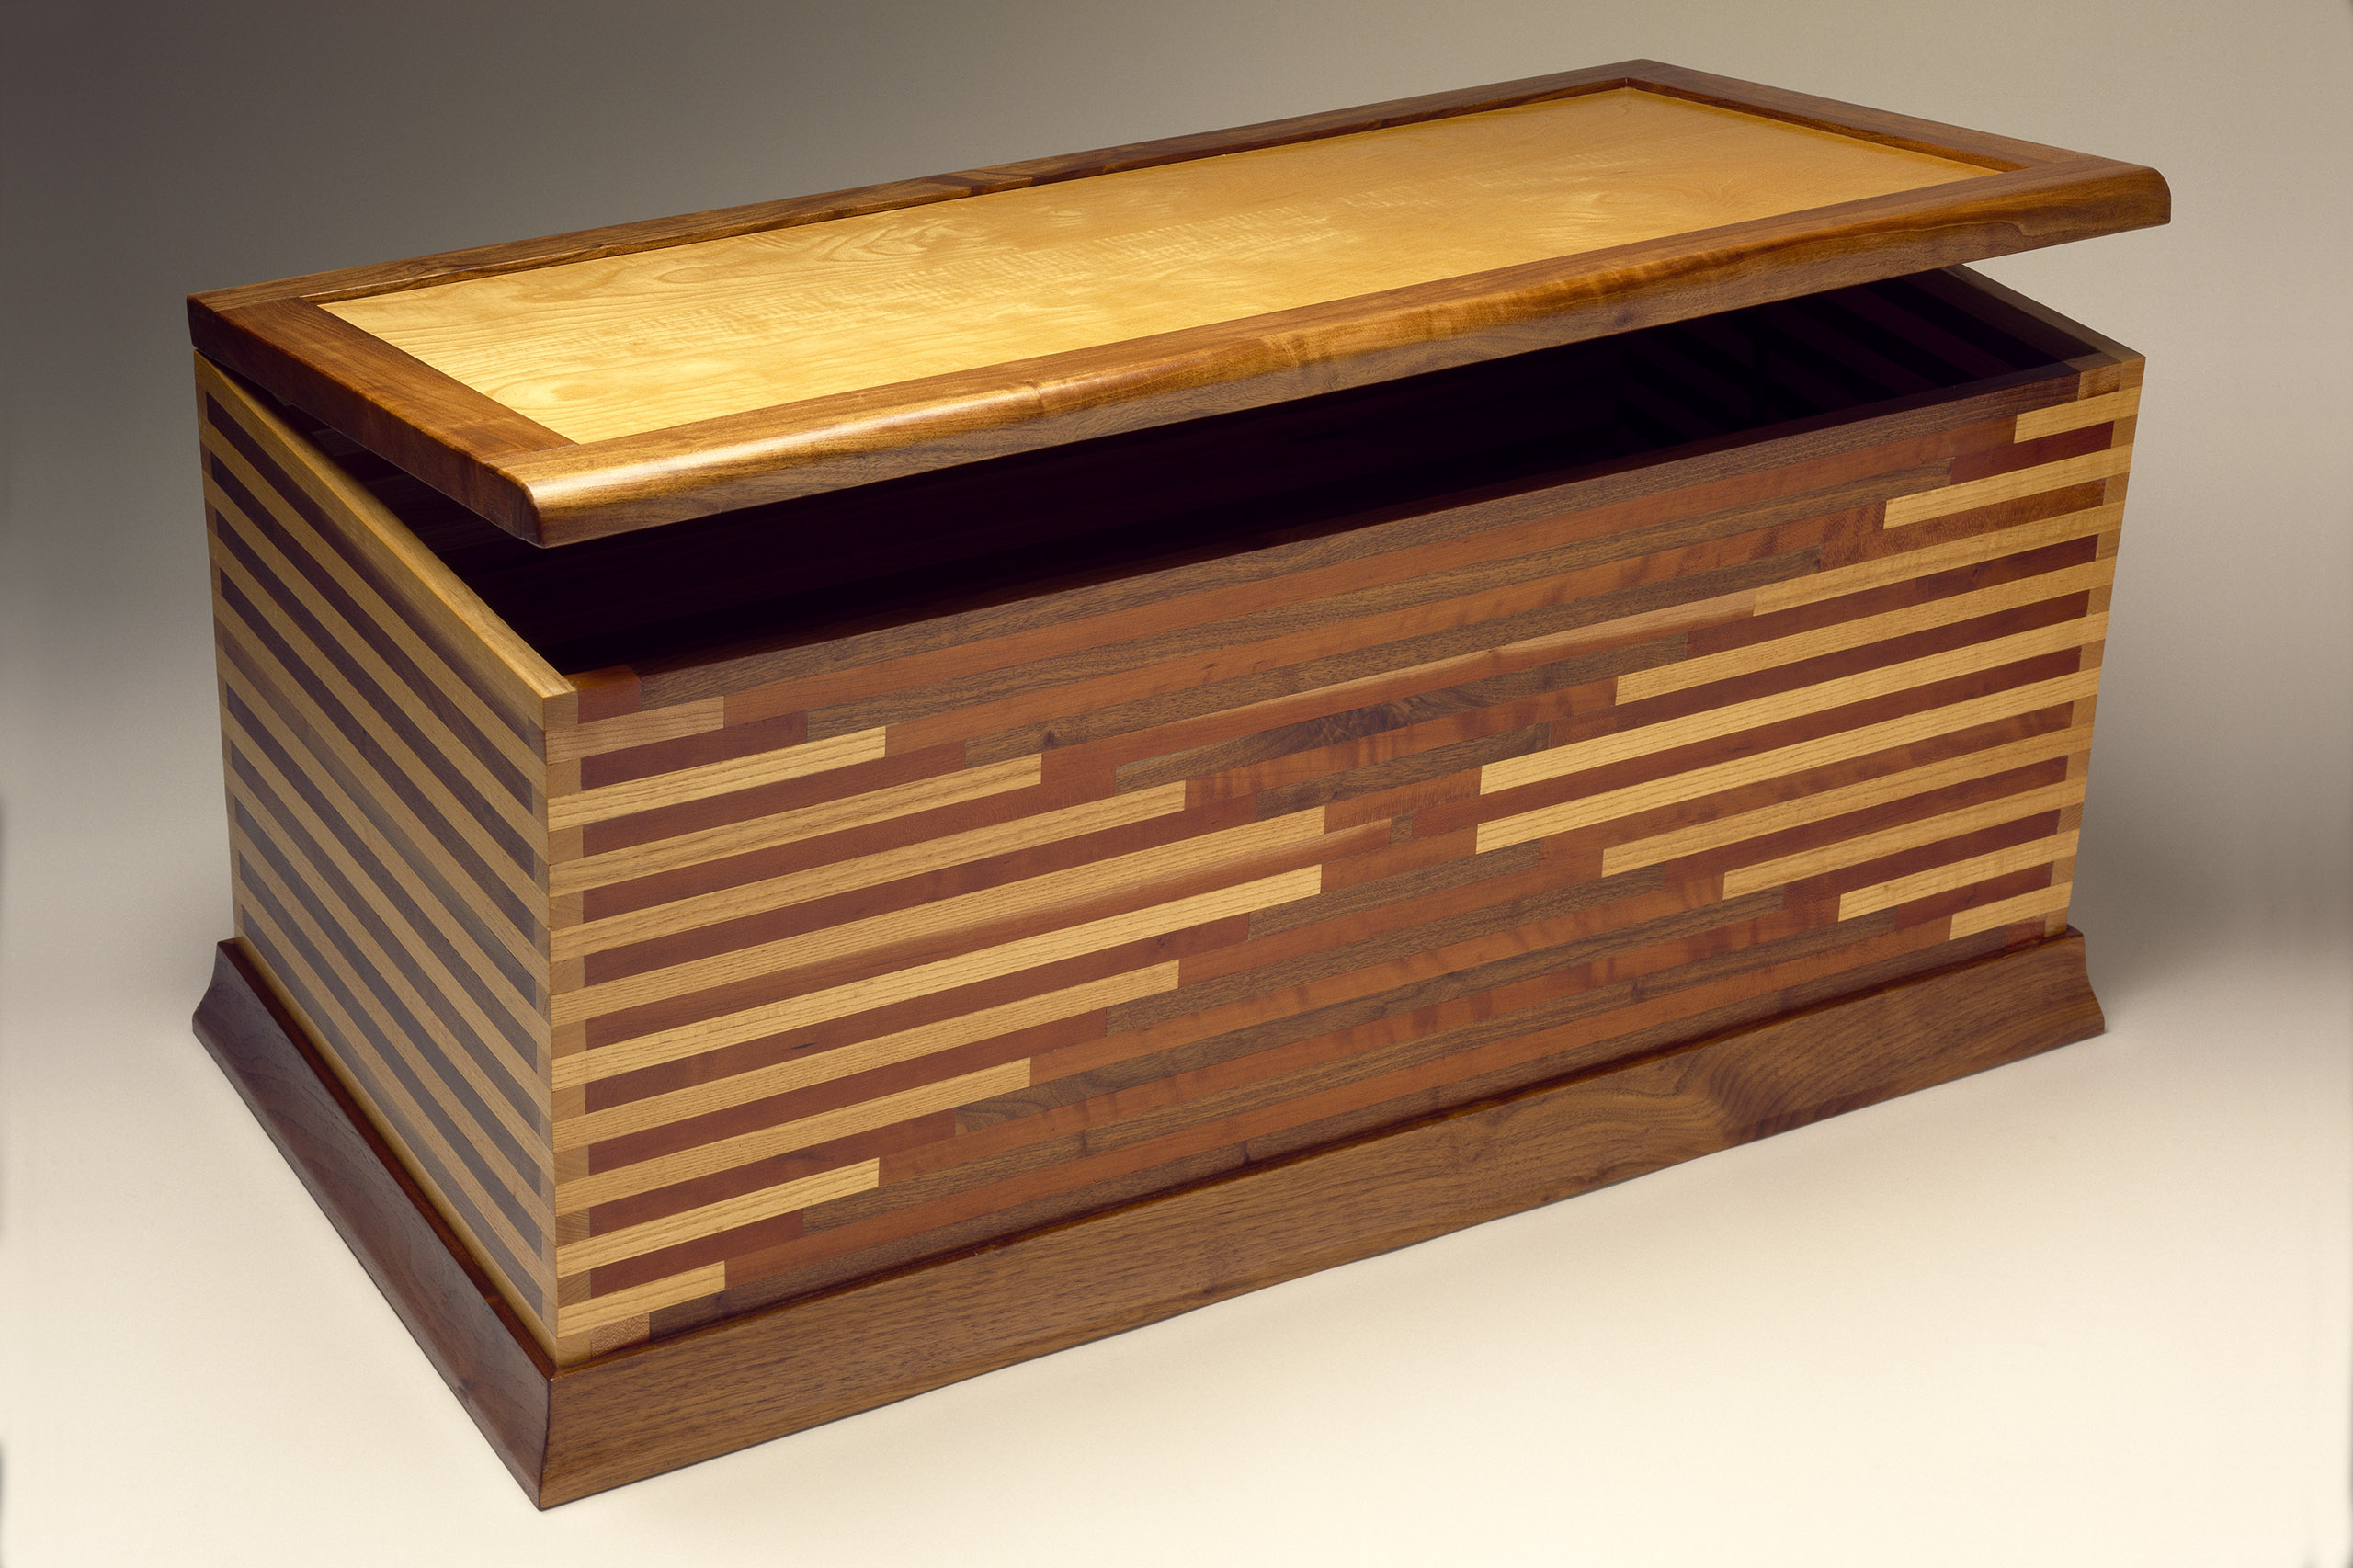 Delicieux Solid Wood Blanket Chest With Cedar Bottom By Seth Rolland Custom Furniture  Design